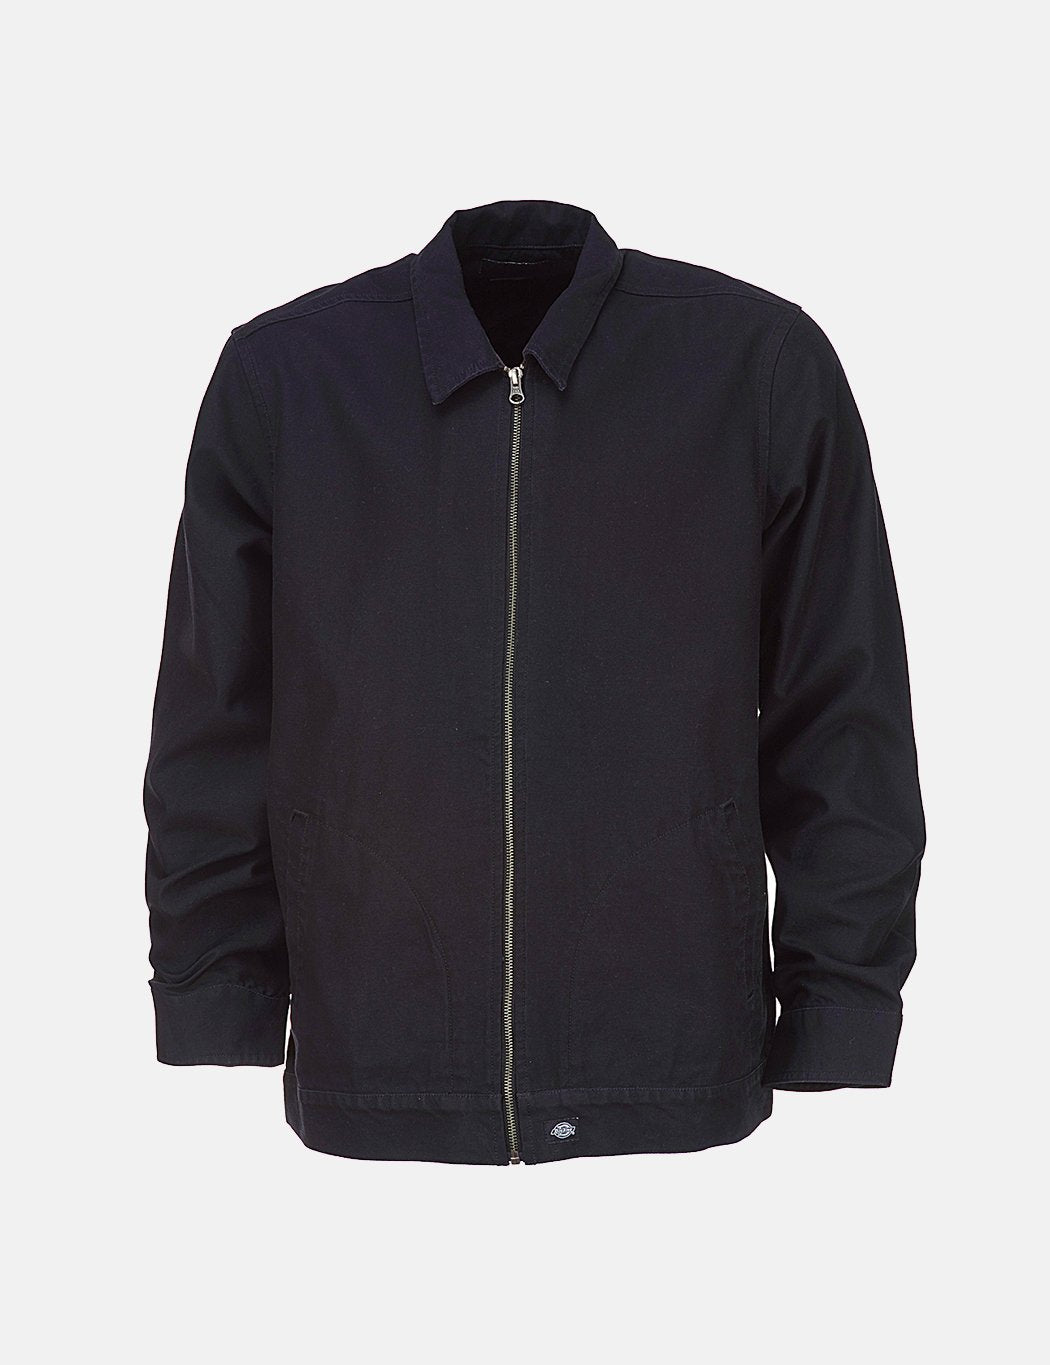 Dickies Barnesville Jacket - Black